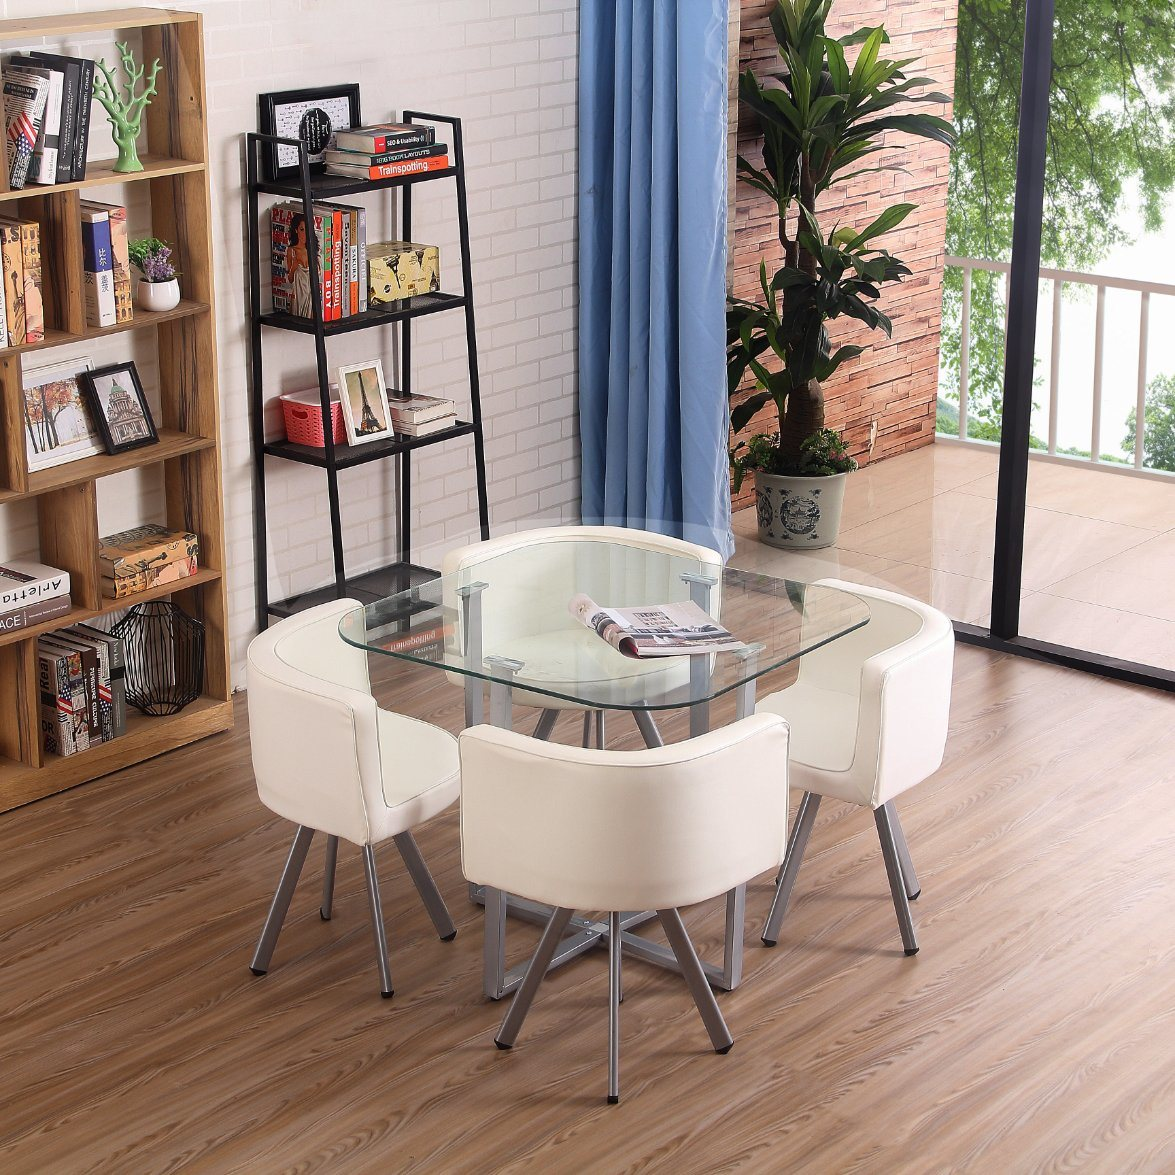 China Modern Dining Table And Chairs Kitchen Dining Room Table Set With Wood Legs High Quality Style Glass Dinning Room Furniture China Dining Room Furniture Modern Dining Table